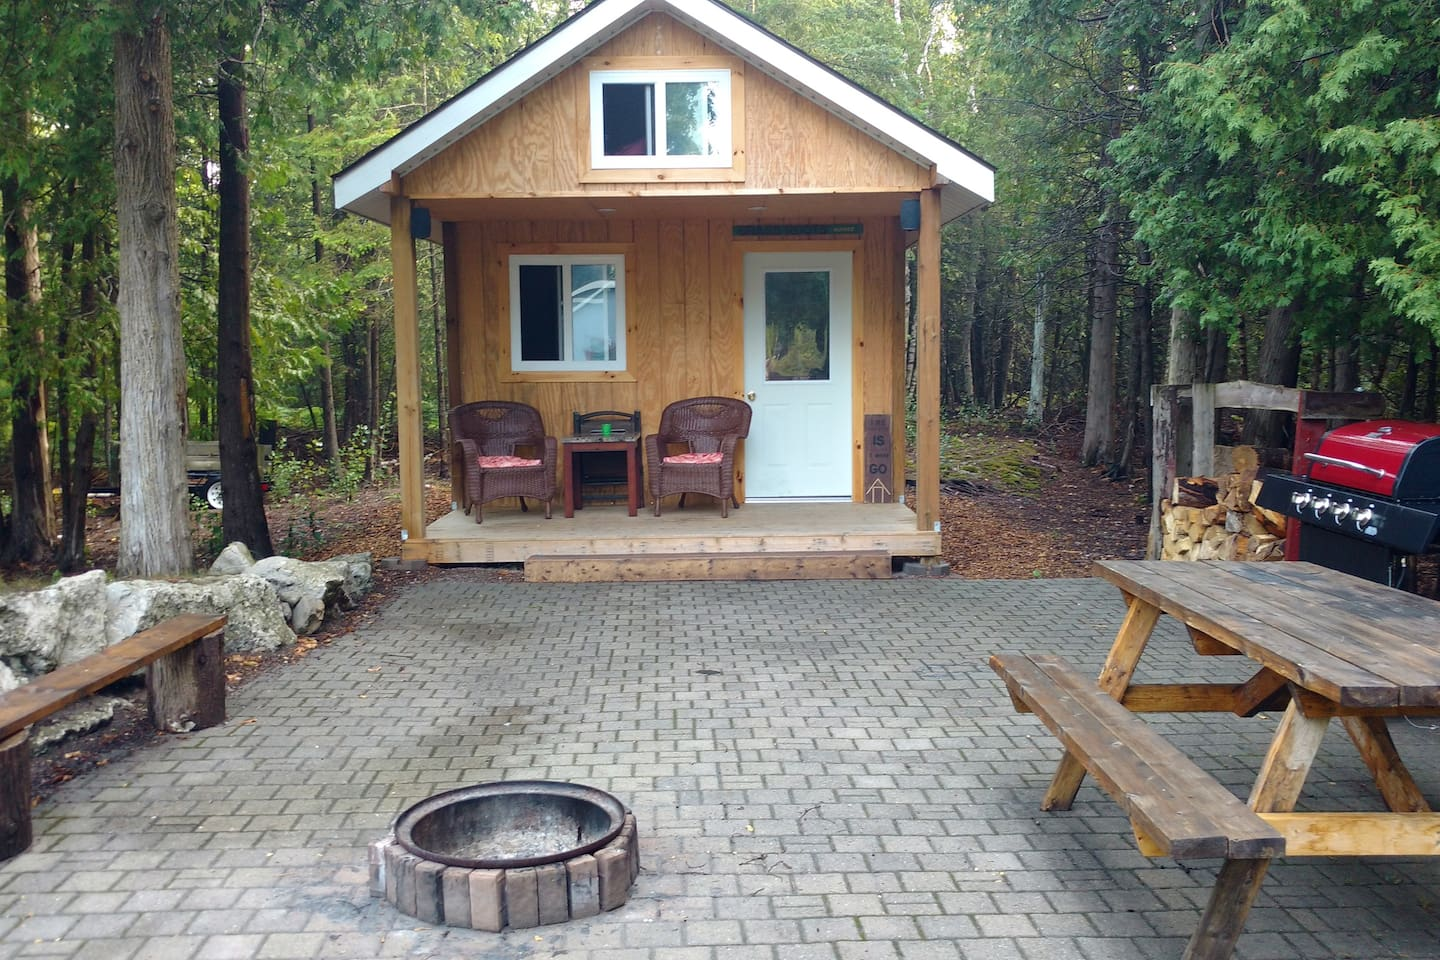 Our Cozy Bunkie is ideal for those who love nature and peaceful surroundings. Relax and unwind with a great book on the deck, or a peaceful campfire in the evening